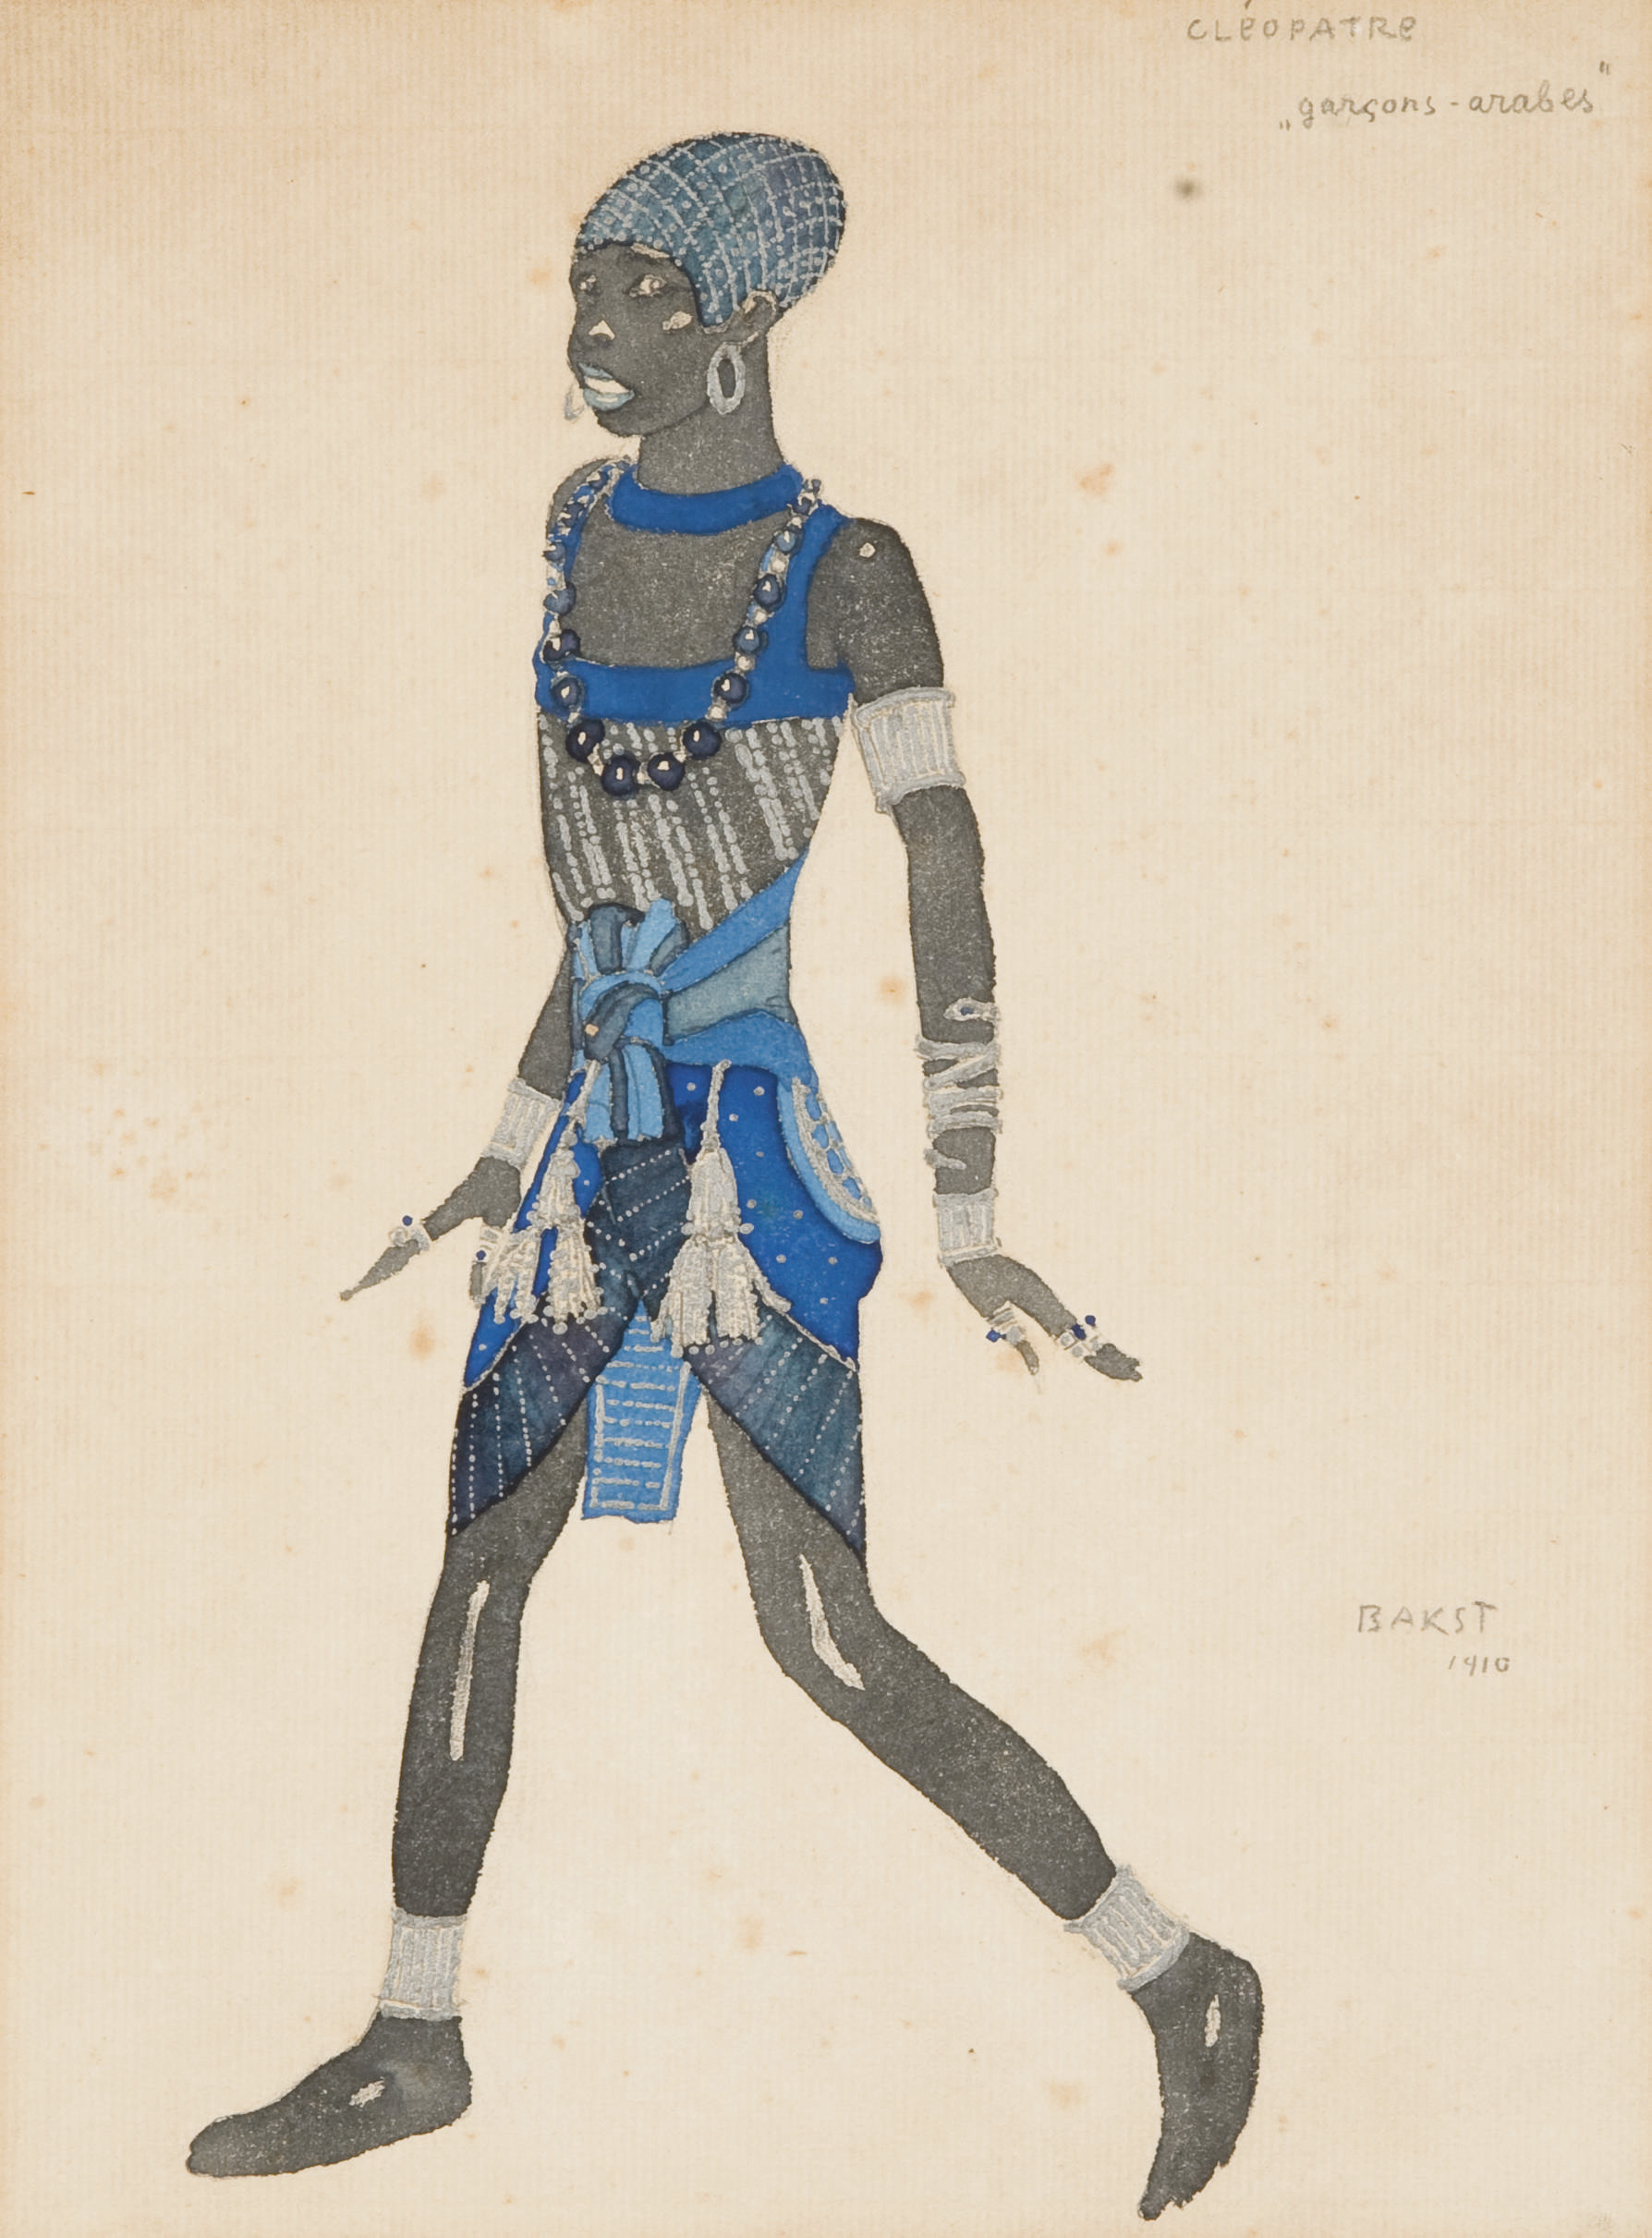 A costume design for Cléopâtre: Le Petit Négrillon